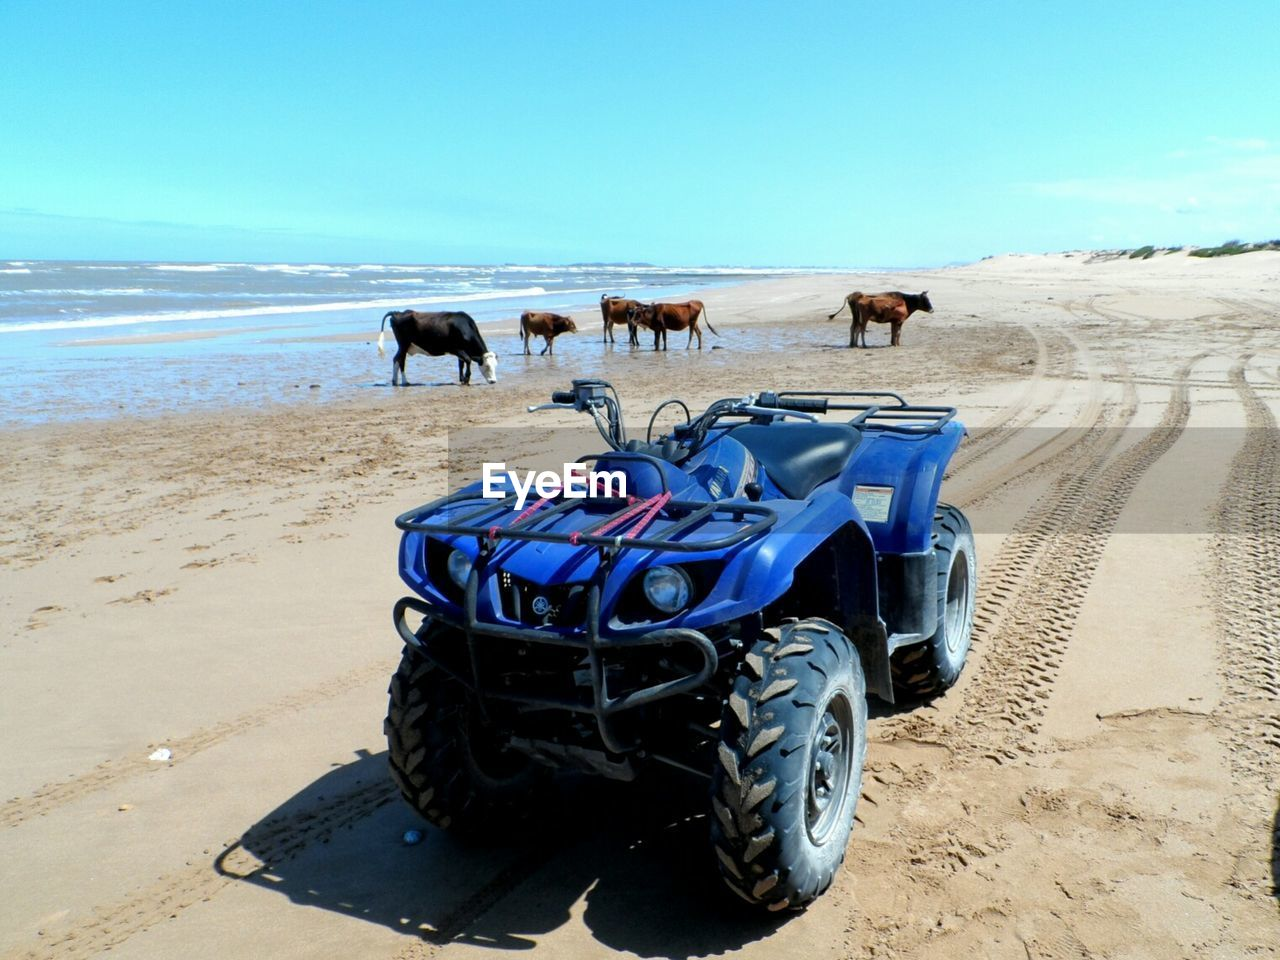 Quadbike and cows at beach against blue sky on sunny day